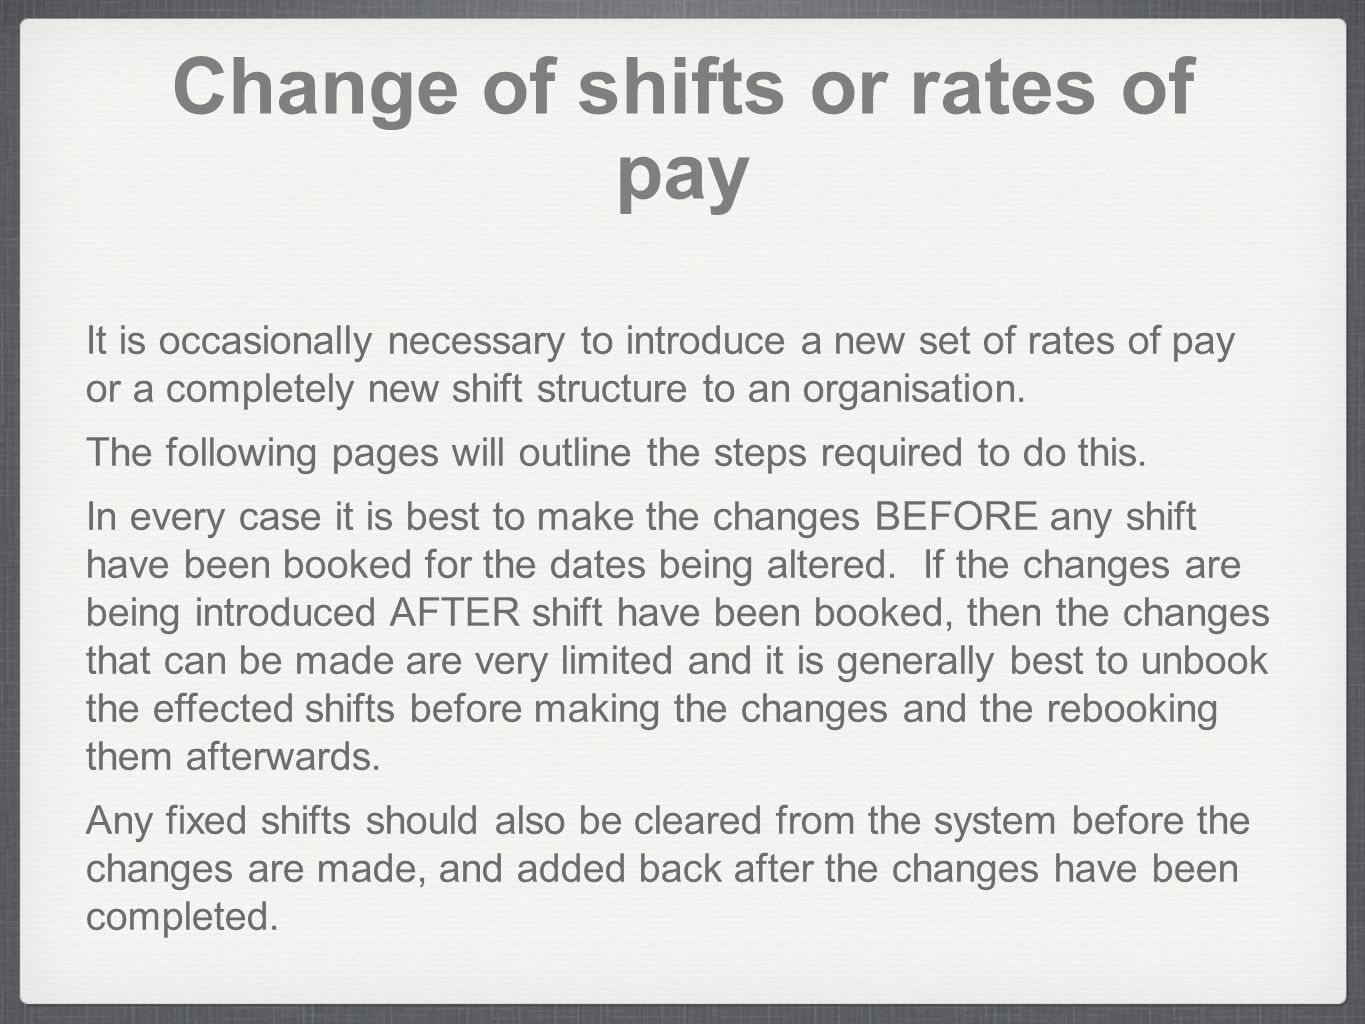 Change of shifts or rates of pay